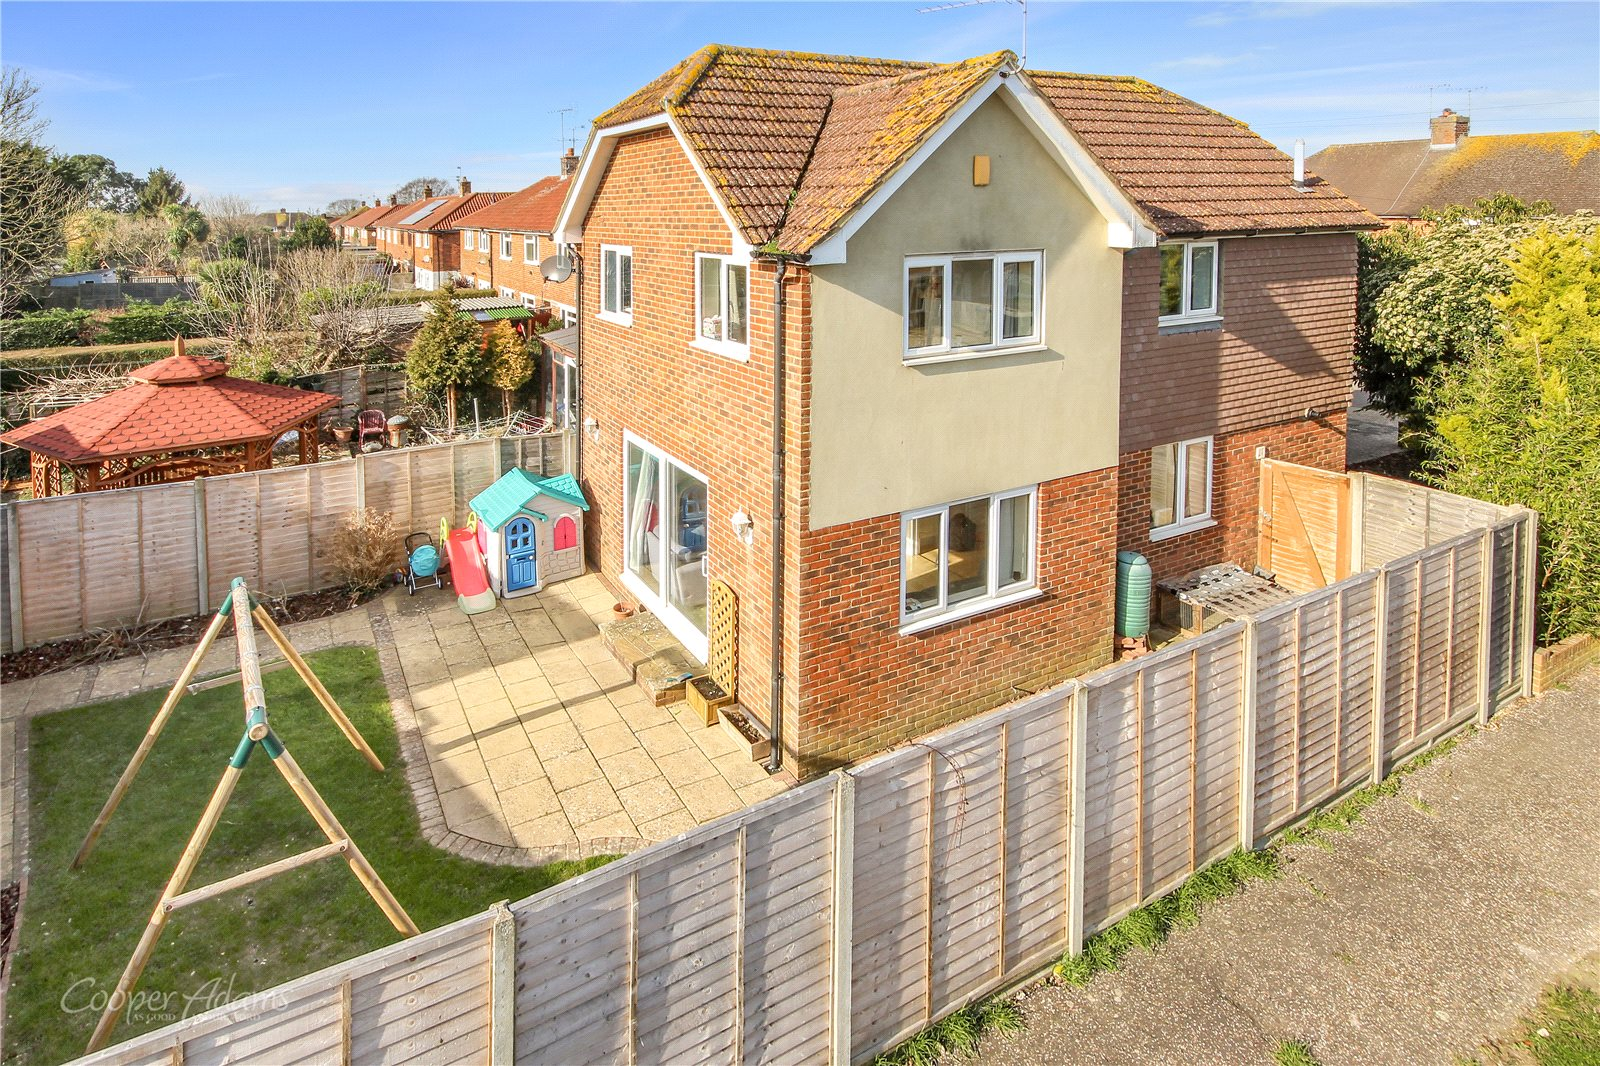 3 bed house for sale in Lloyd Goring Close, Angmering, BN16